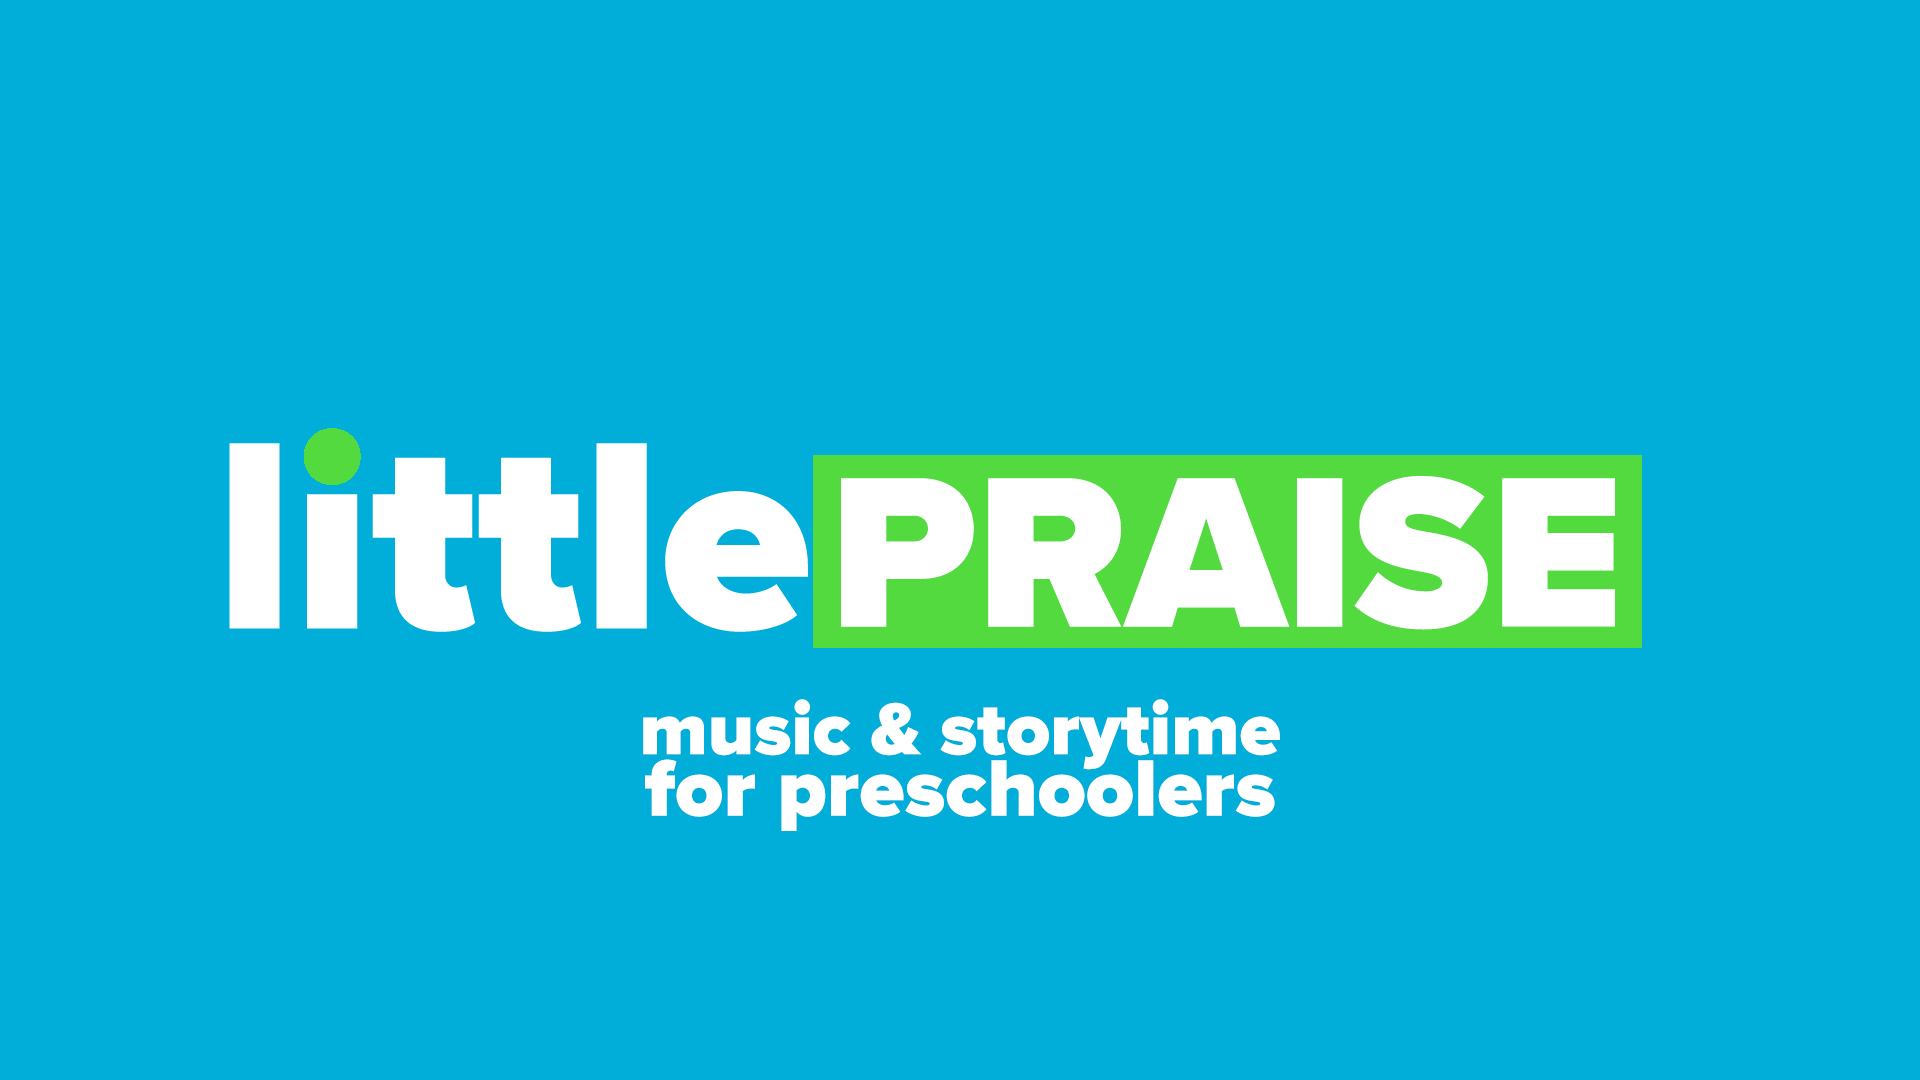 littlePRAISE Wallpaper - Widescreen.jpg